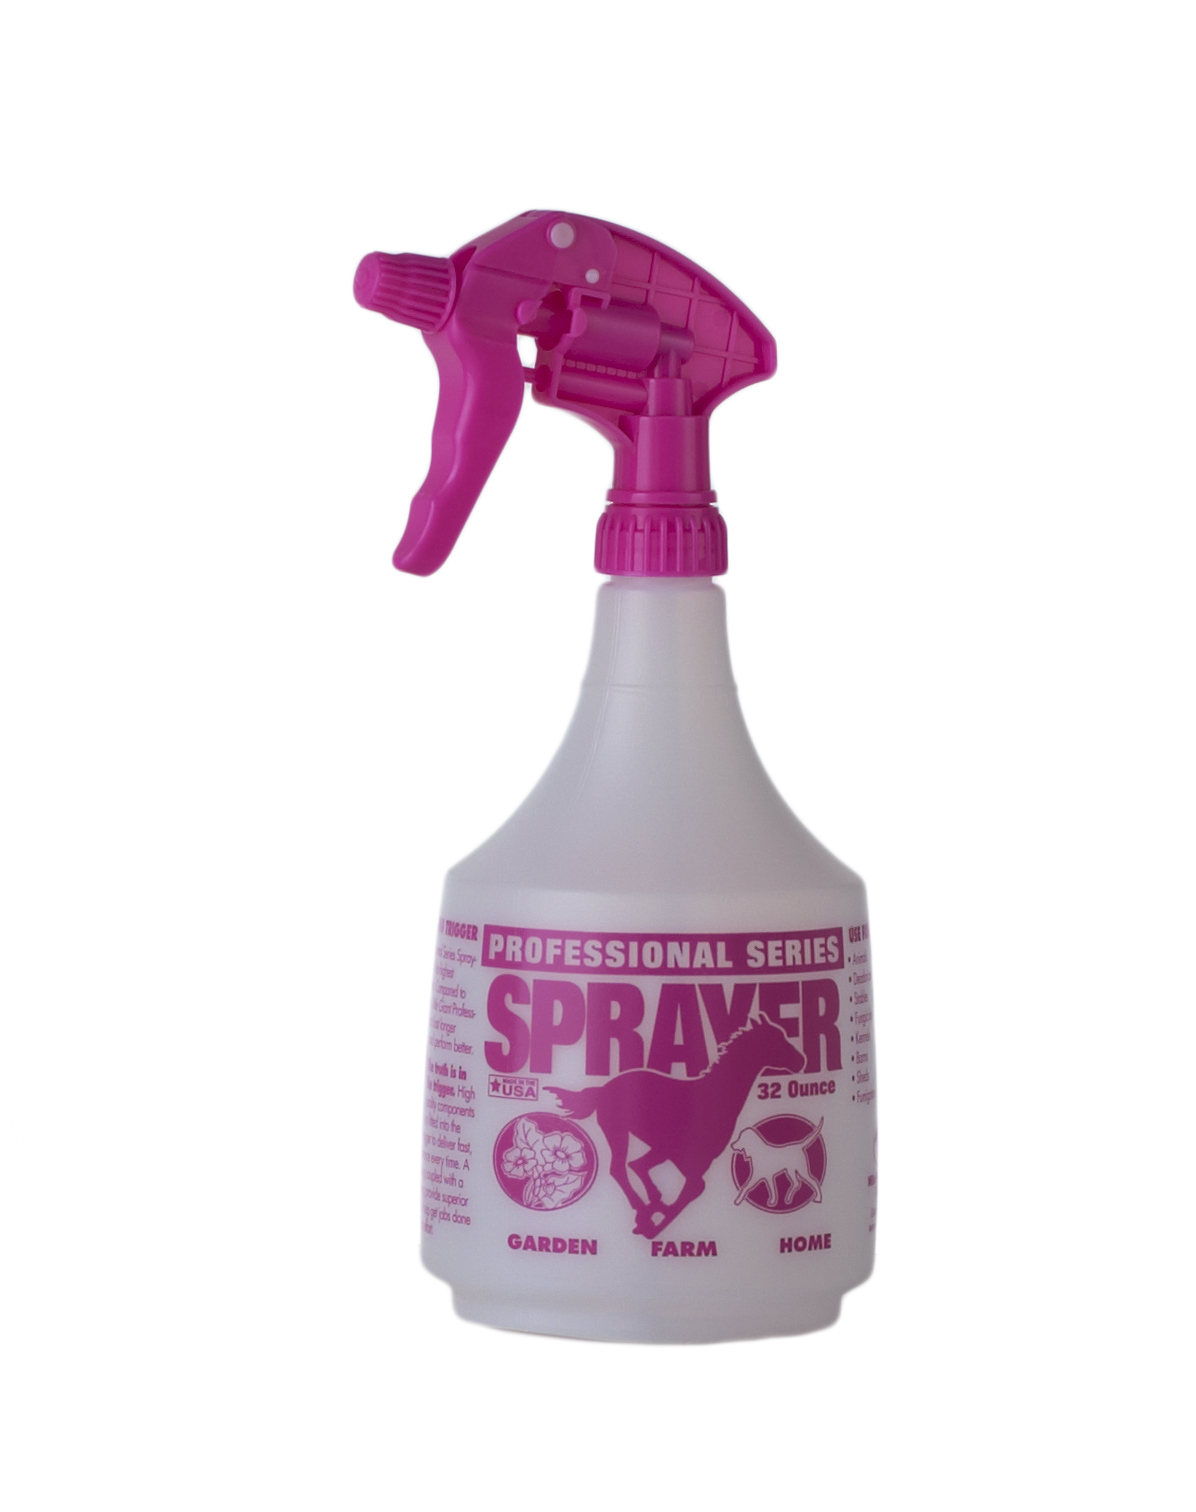 Spray Bottle, Pink, 32 oz.